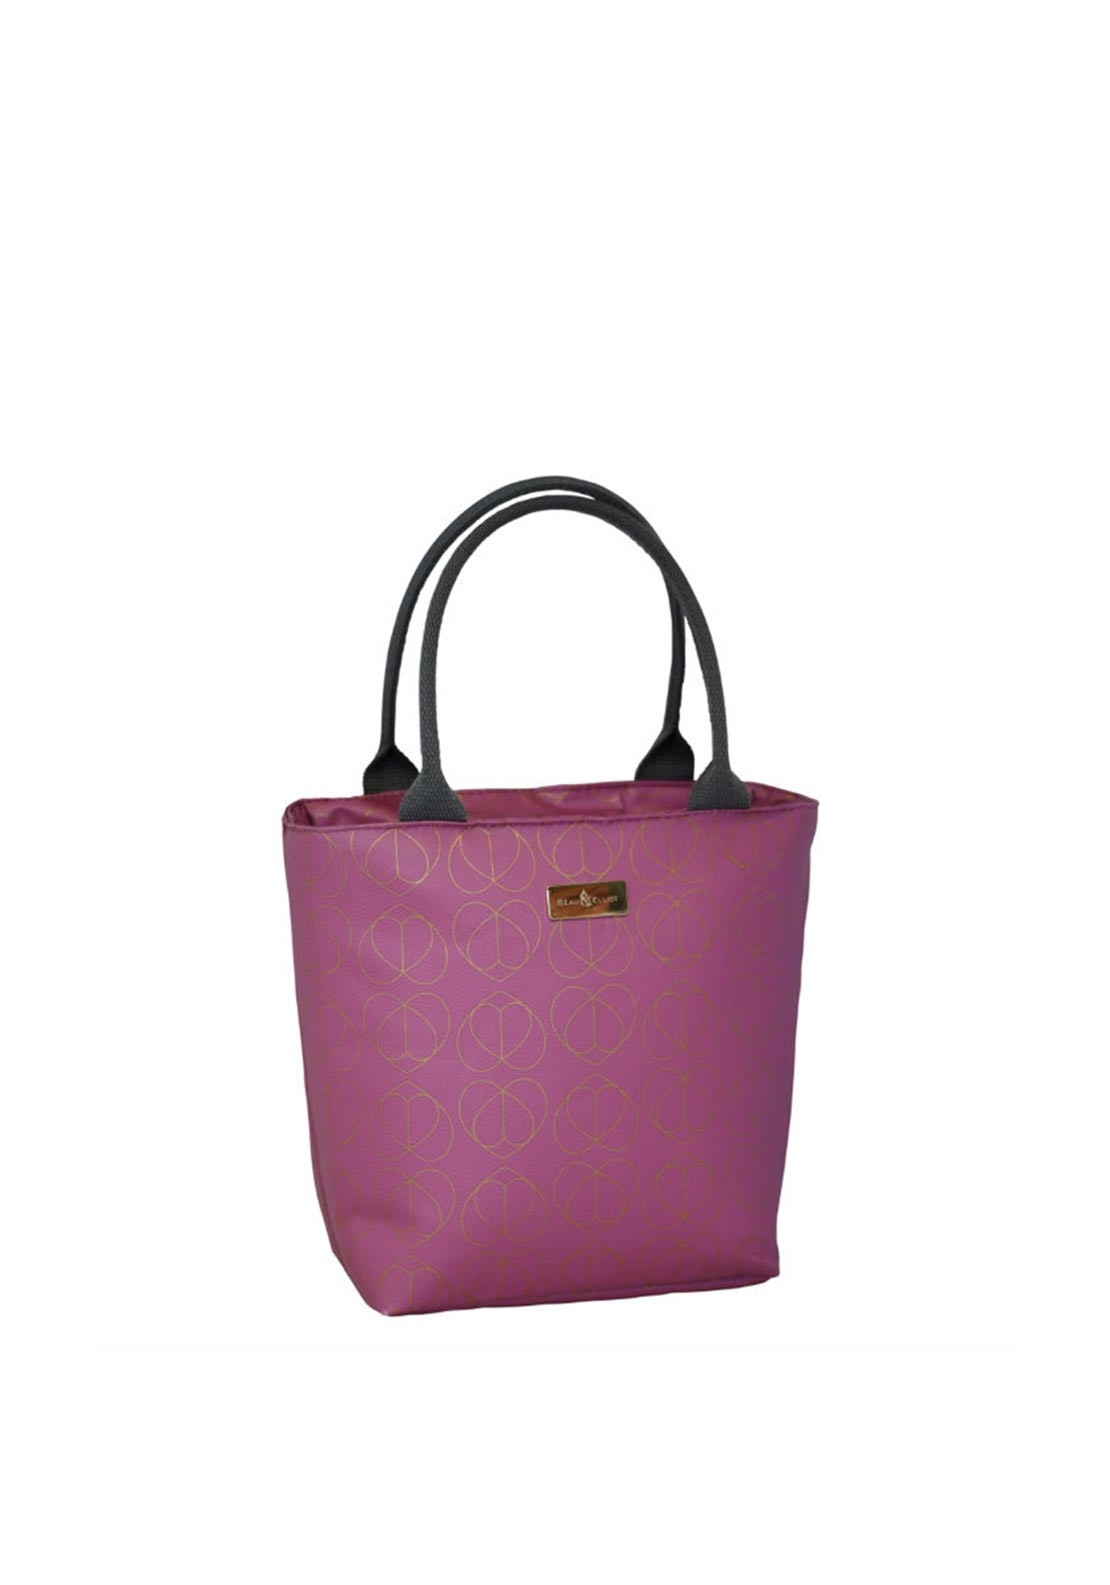 Beau & Elliot Orchid Insulated Lunch Tote